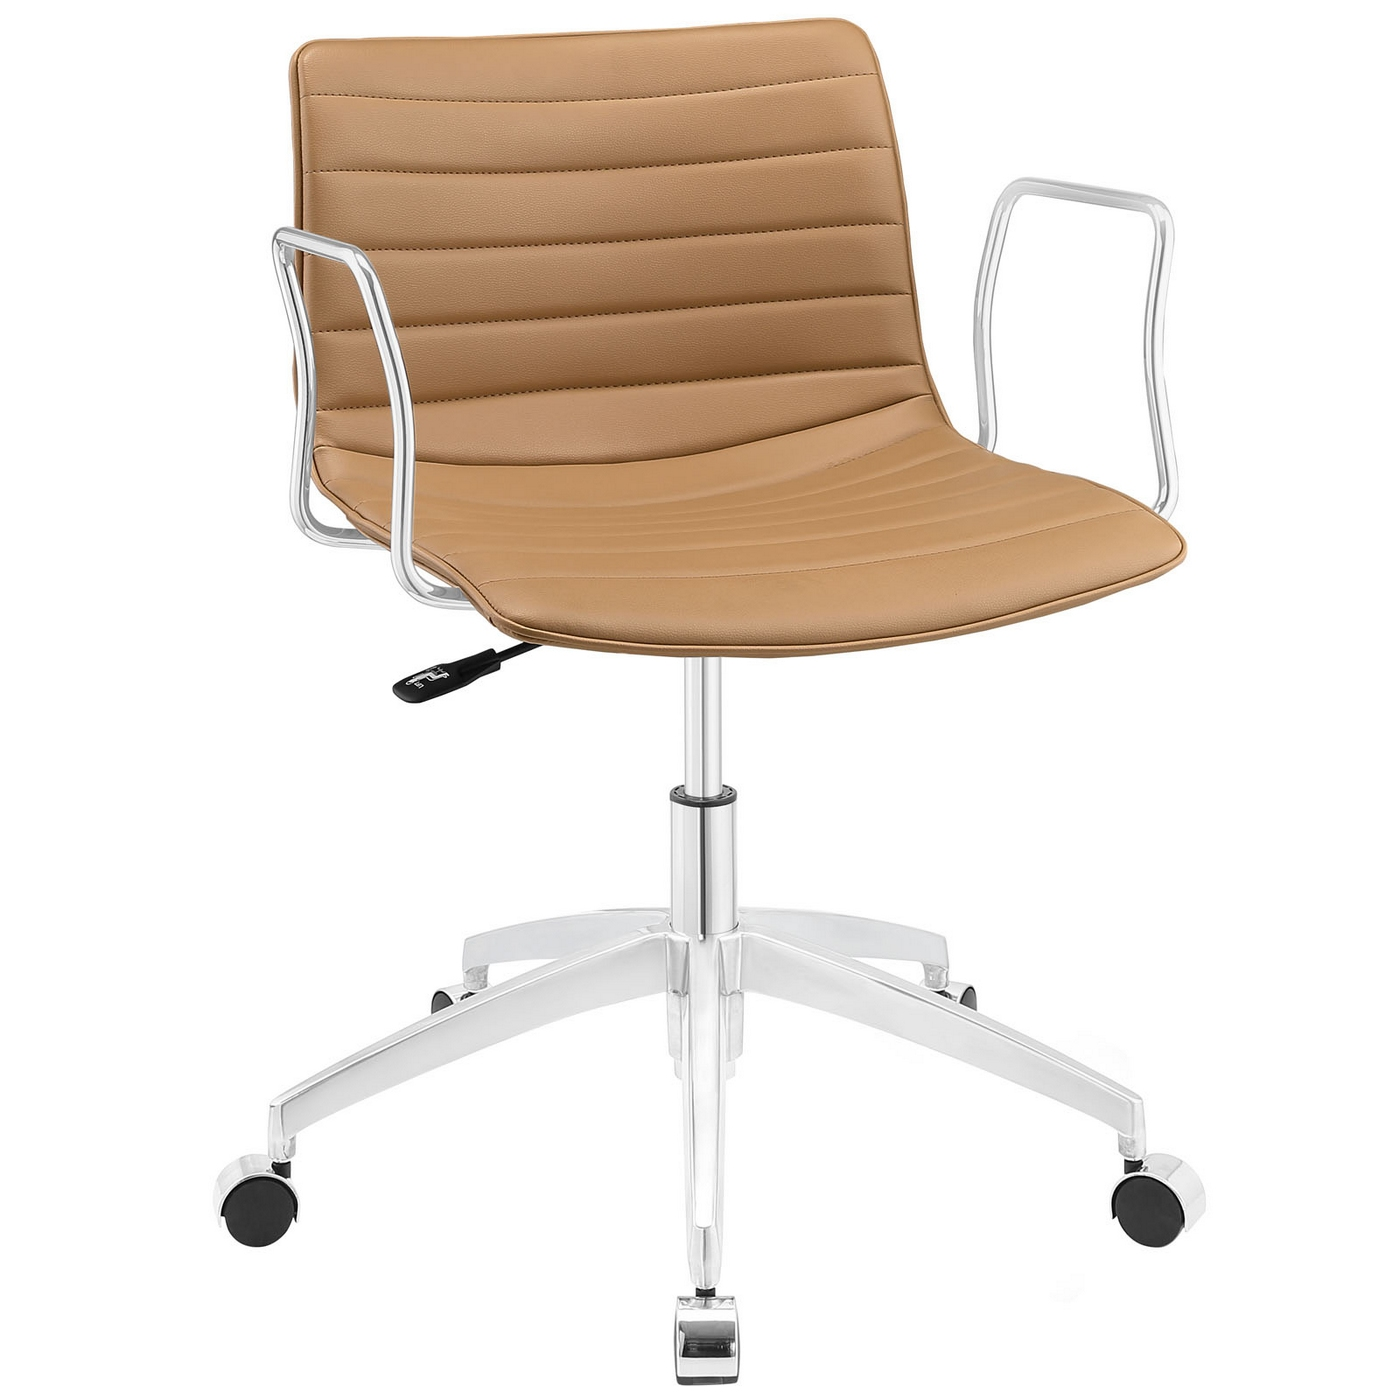 chair steel base with wheels wicker back dining chairs celerity modern form fitting vinyl office